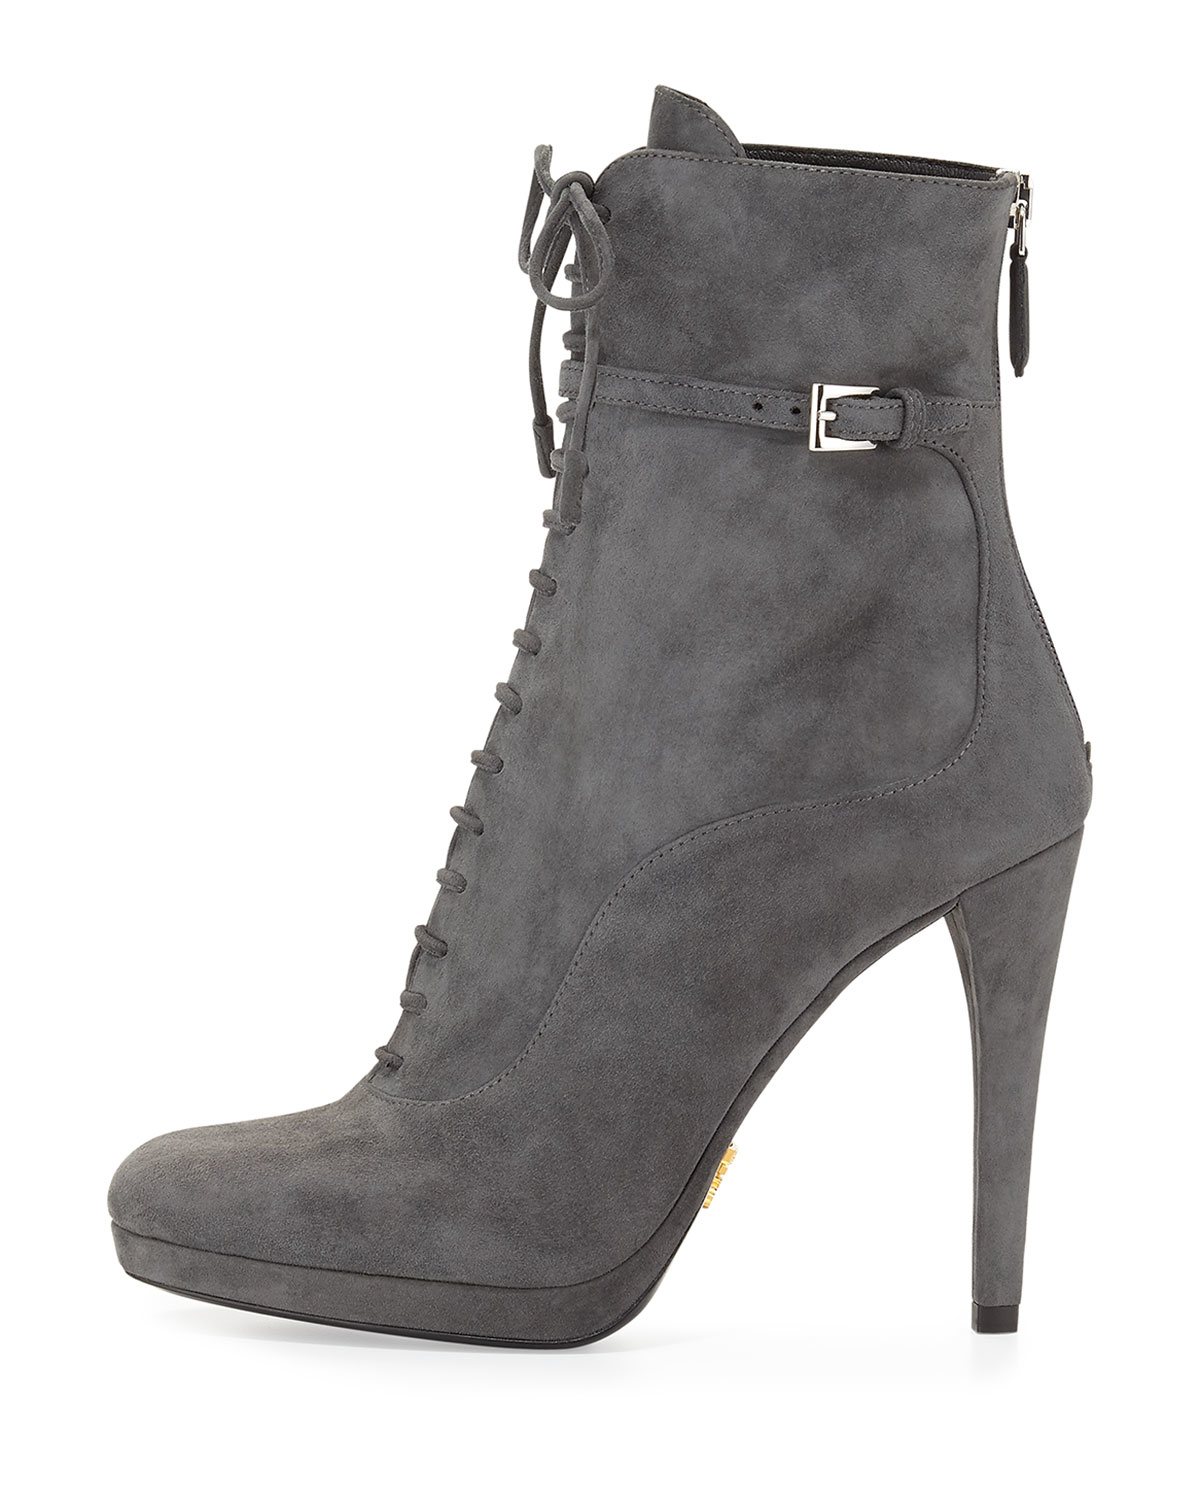 591645ceb22 Prada Grey Suede Ankle Boots